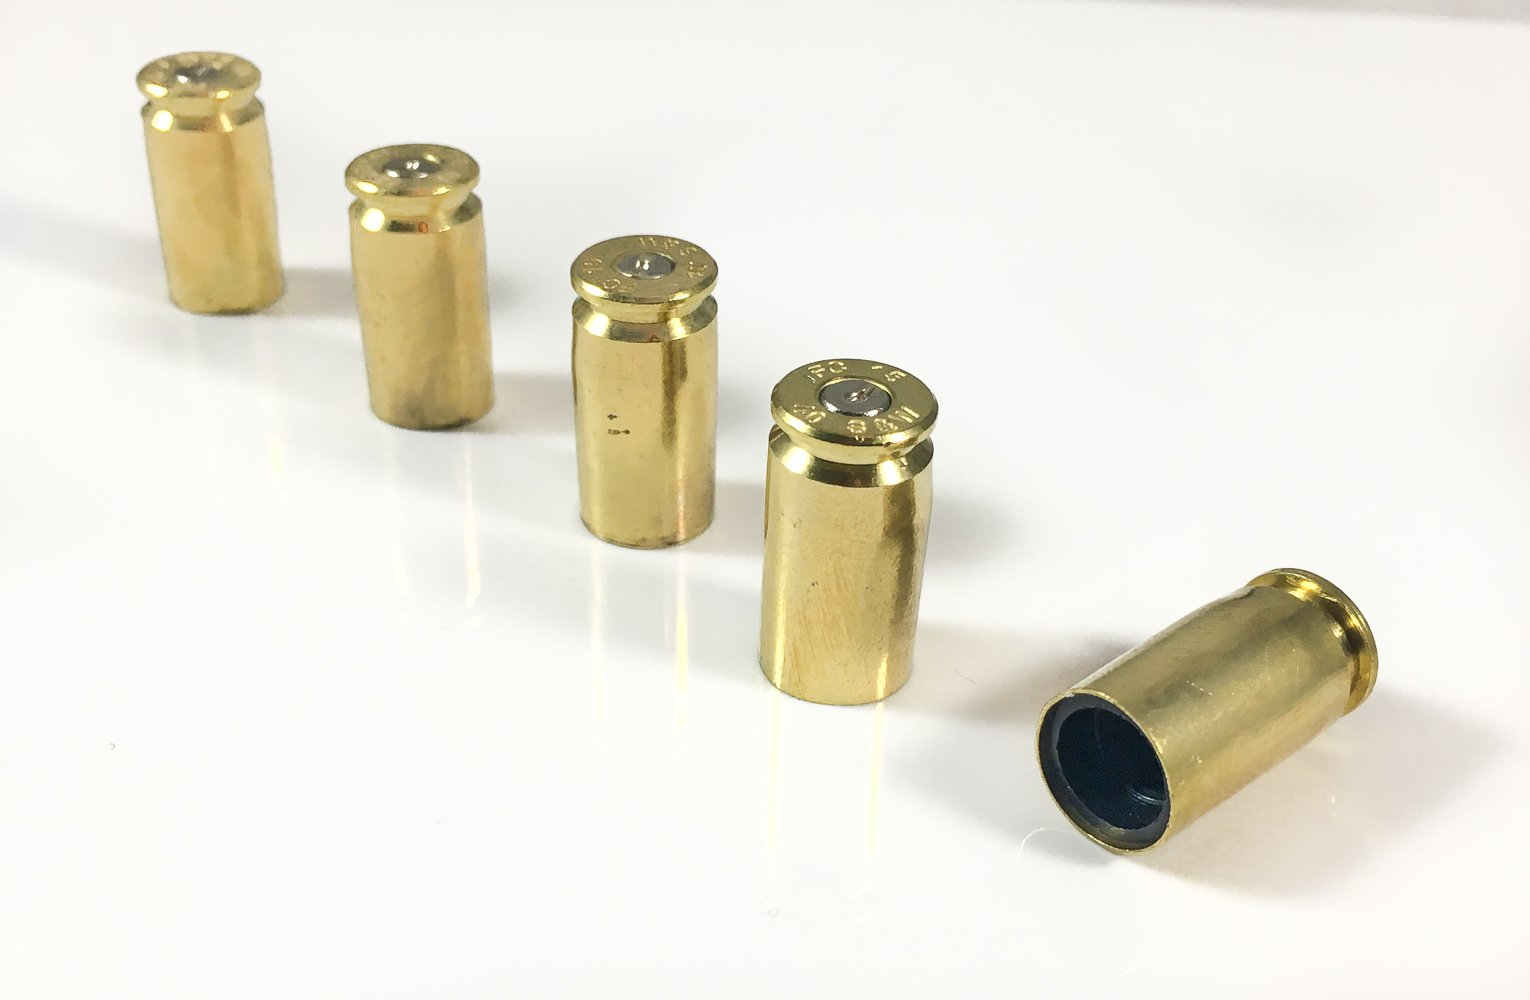 Hollow-Point Gear Bullet Tire Caps for Jeeps - Set of 5 Recycled Brass .40 Caliber Once-Fired Bullet Casing - Car, Bike, Motorcycle, Truck, ATV Replacement Tire Valve Caps. Gift for Military